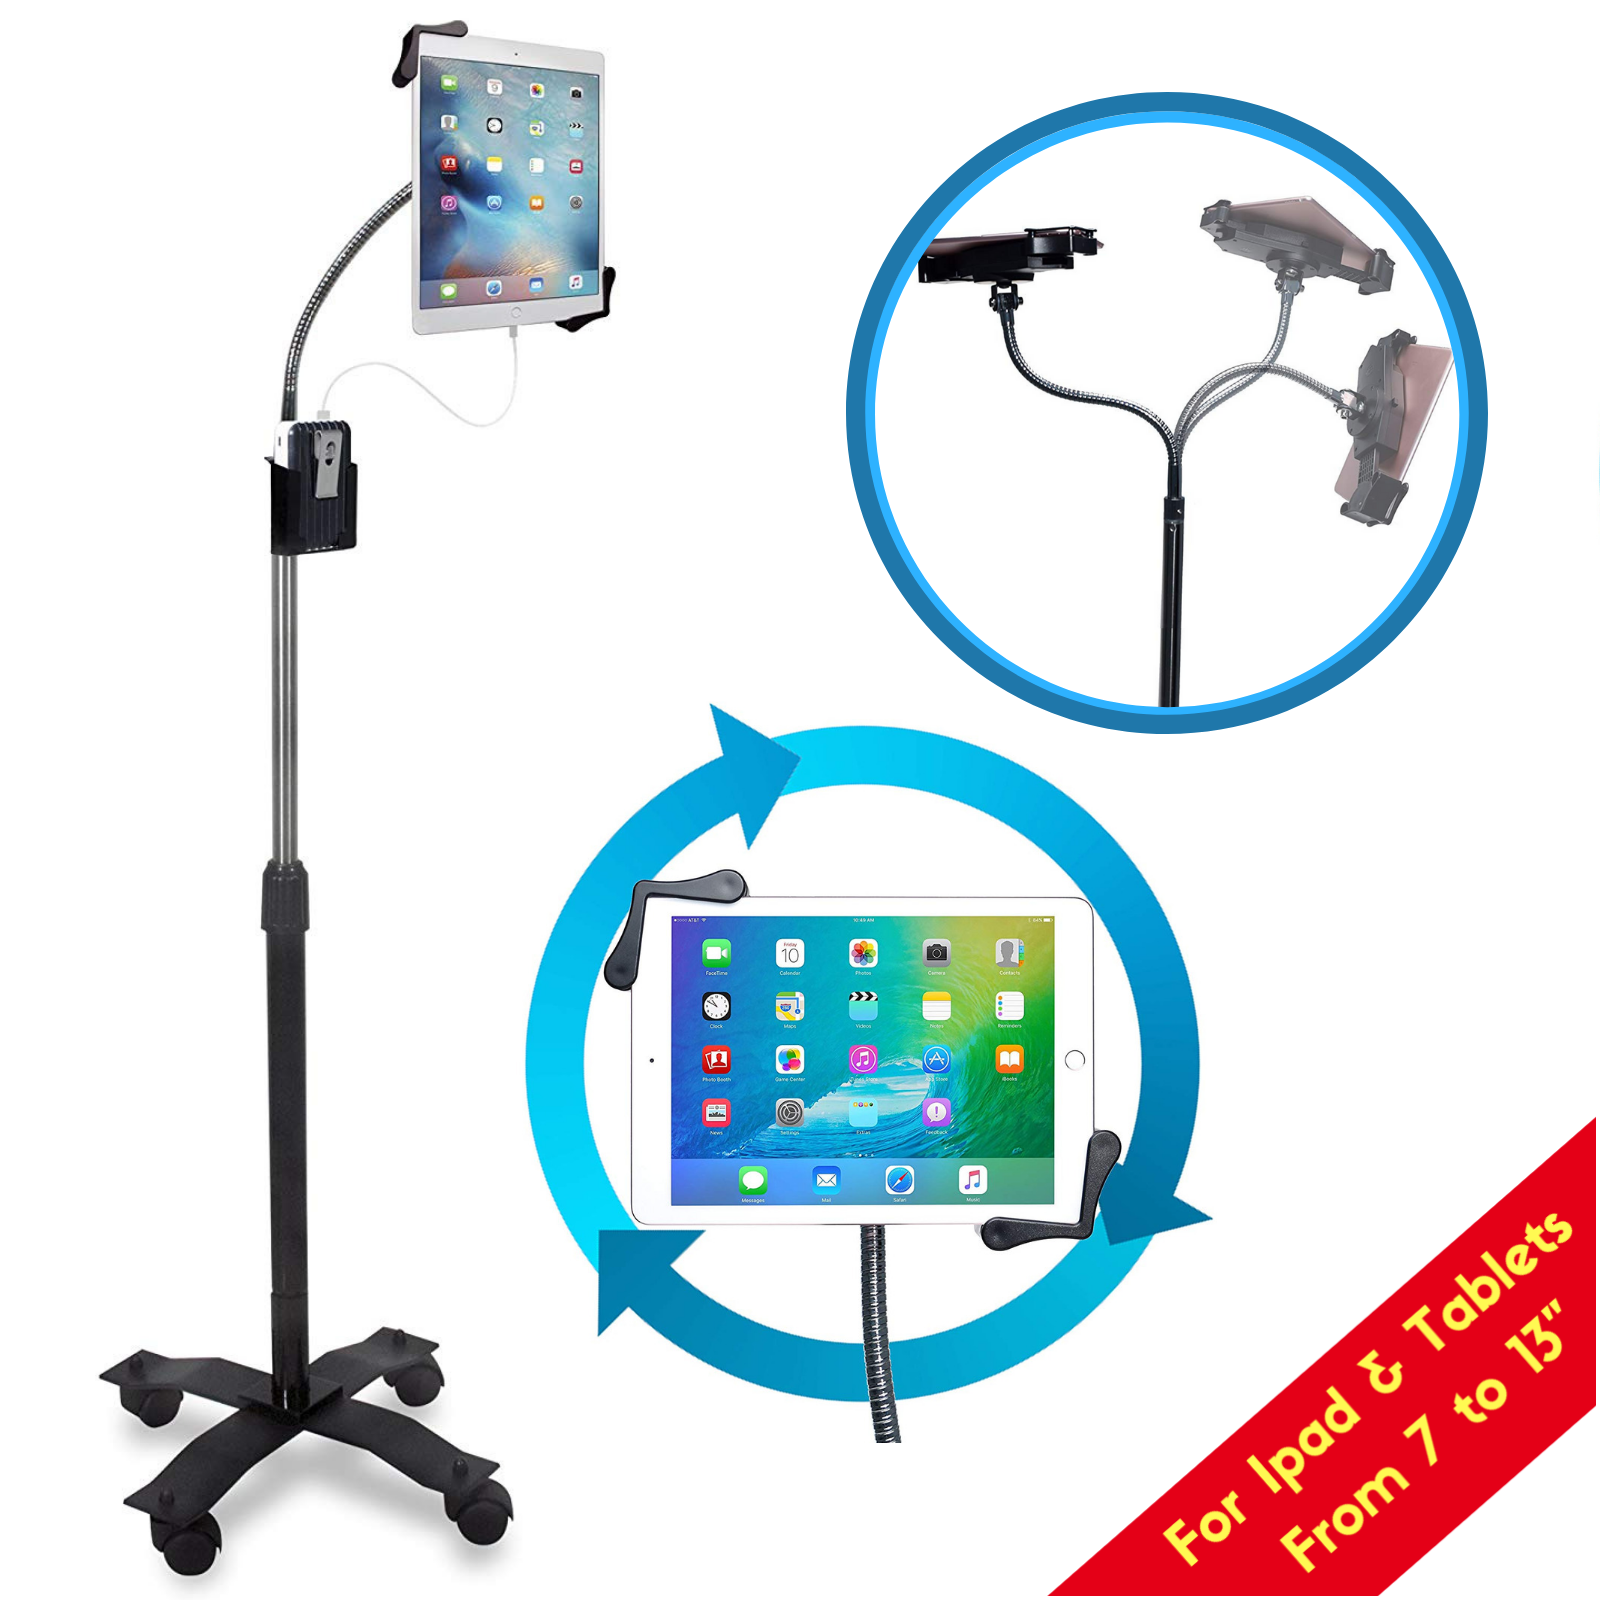 CTA Digital Compact Gooseneck Floor Stand for 7-13 Inch Tabl